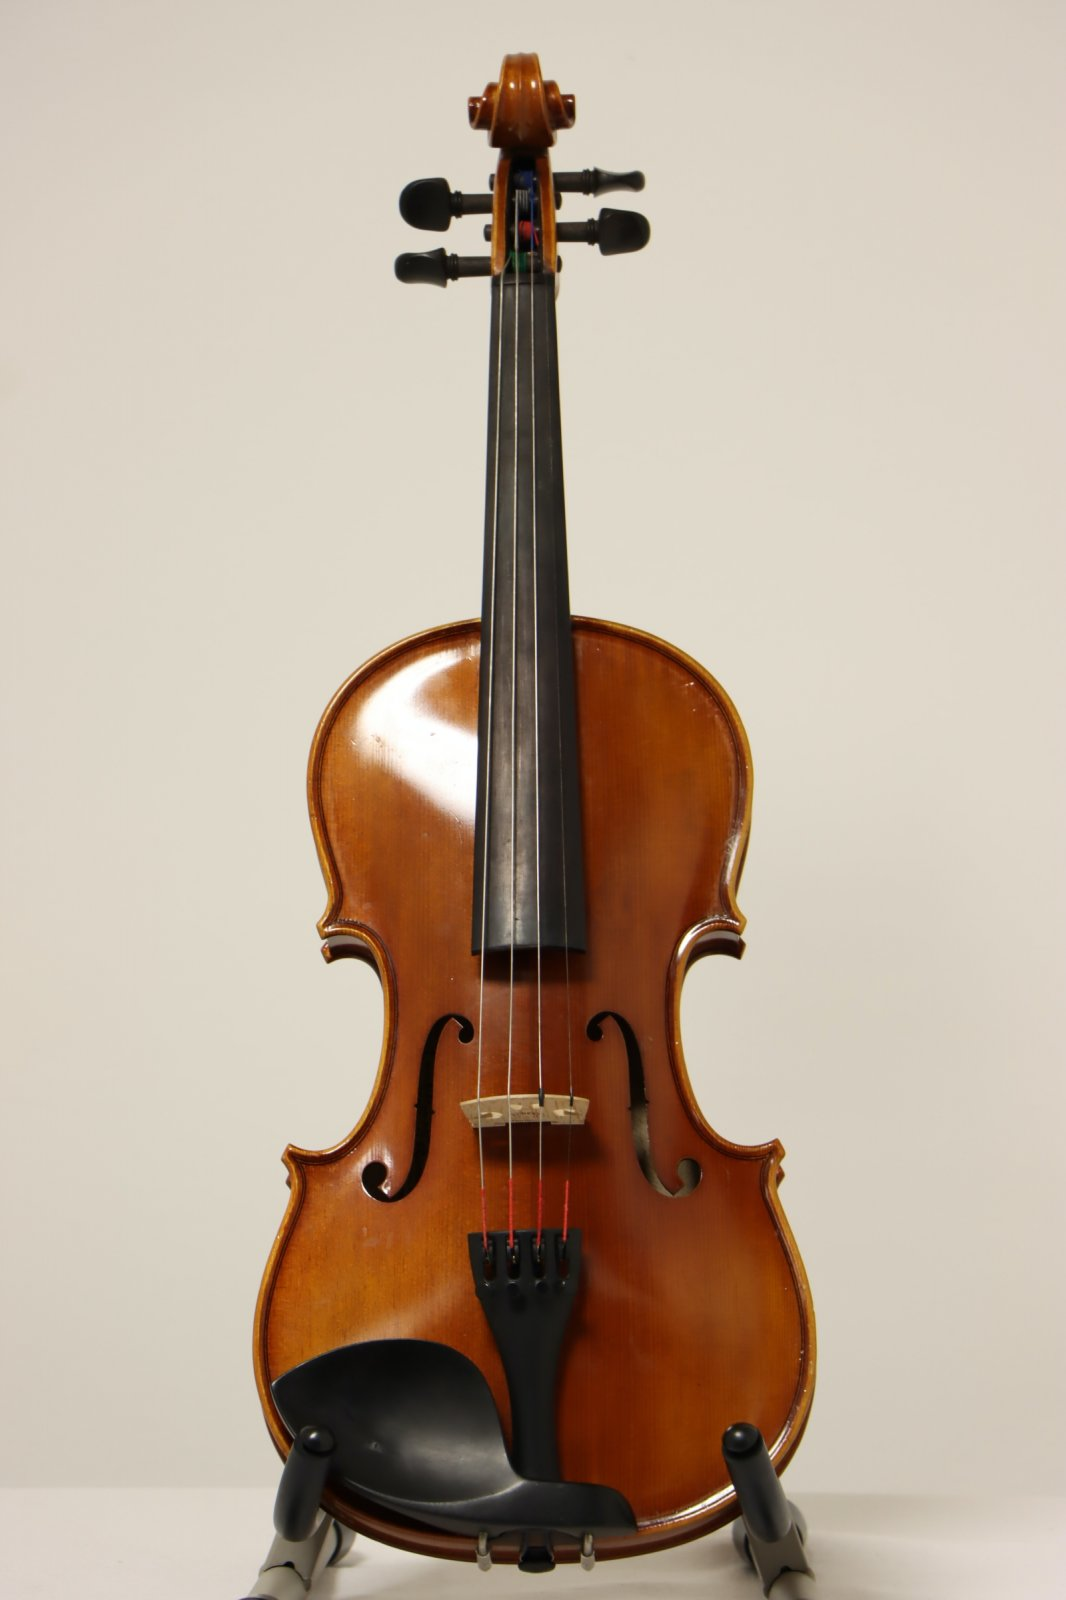 USED Strobel by Eastman 4/4 Violin Model ML80 with Case and Bow